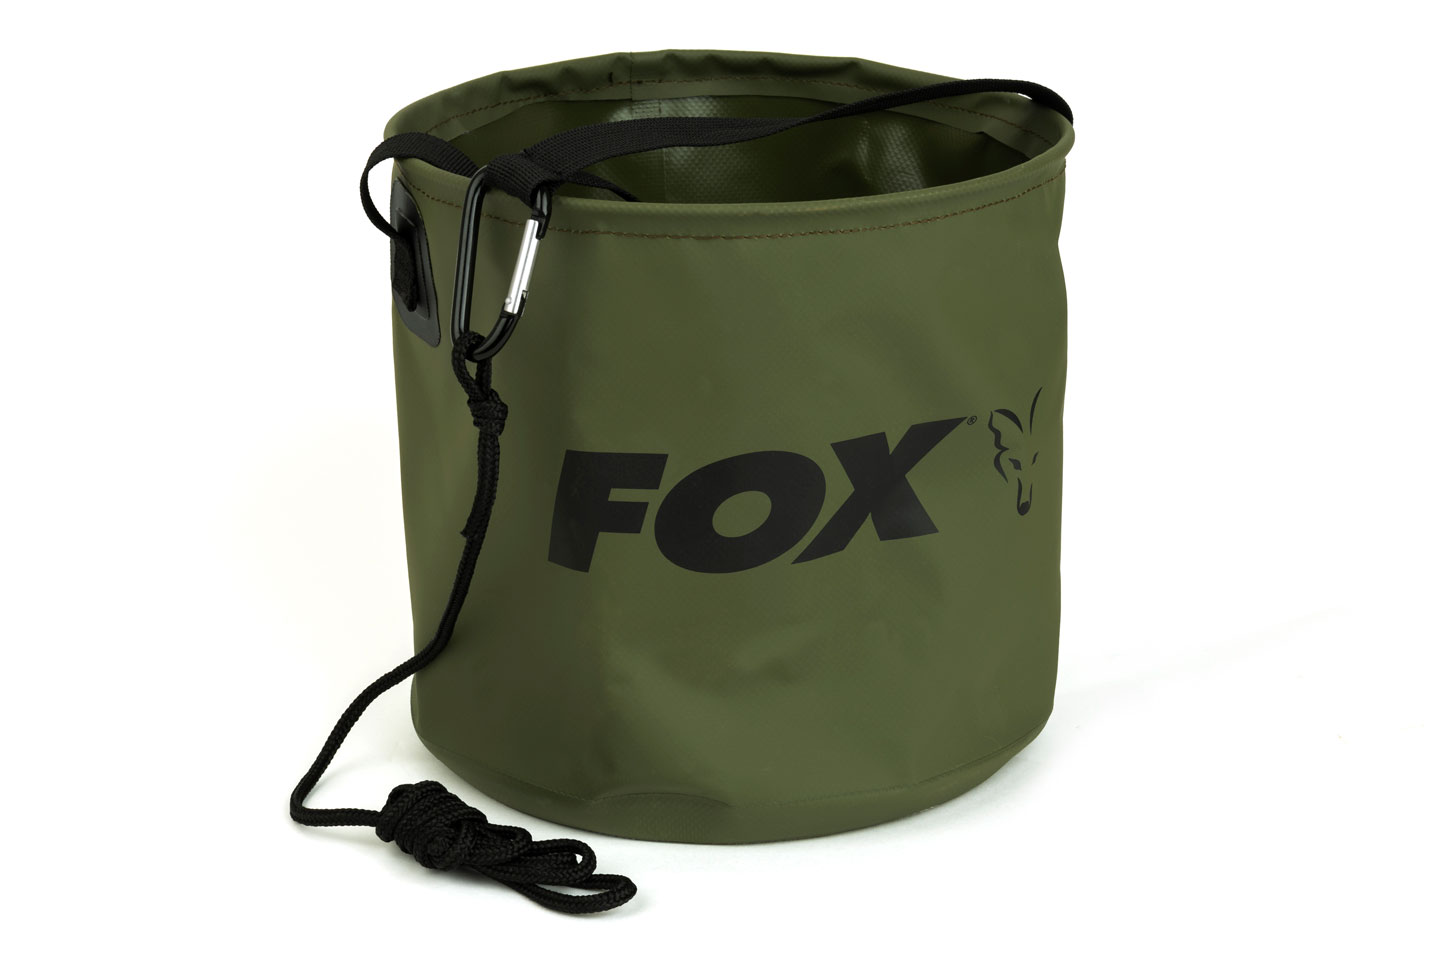 fox-large-collapsible-bucket_maingif